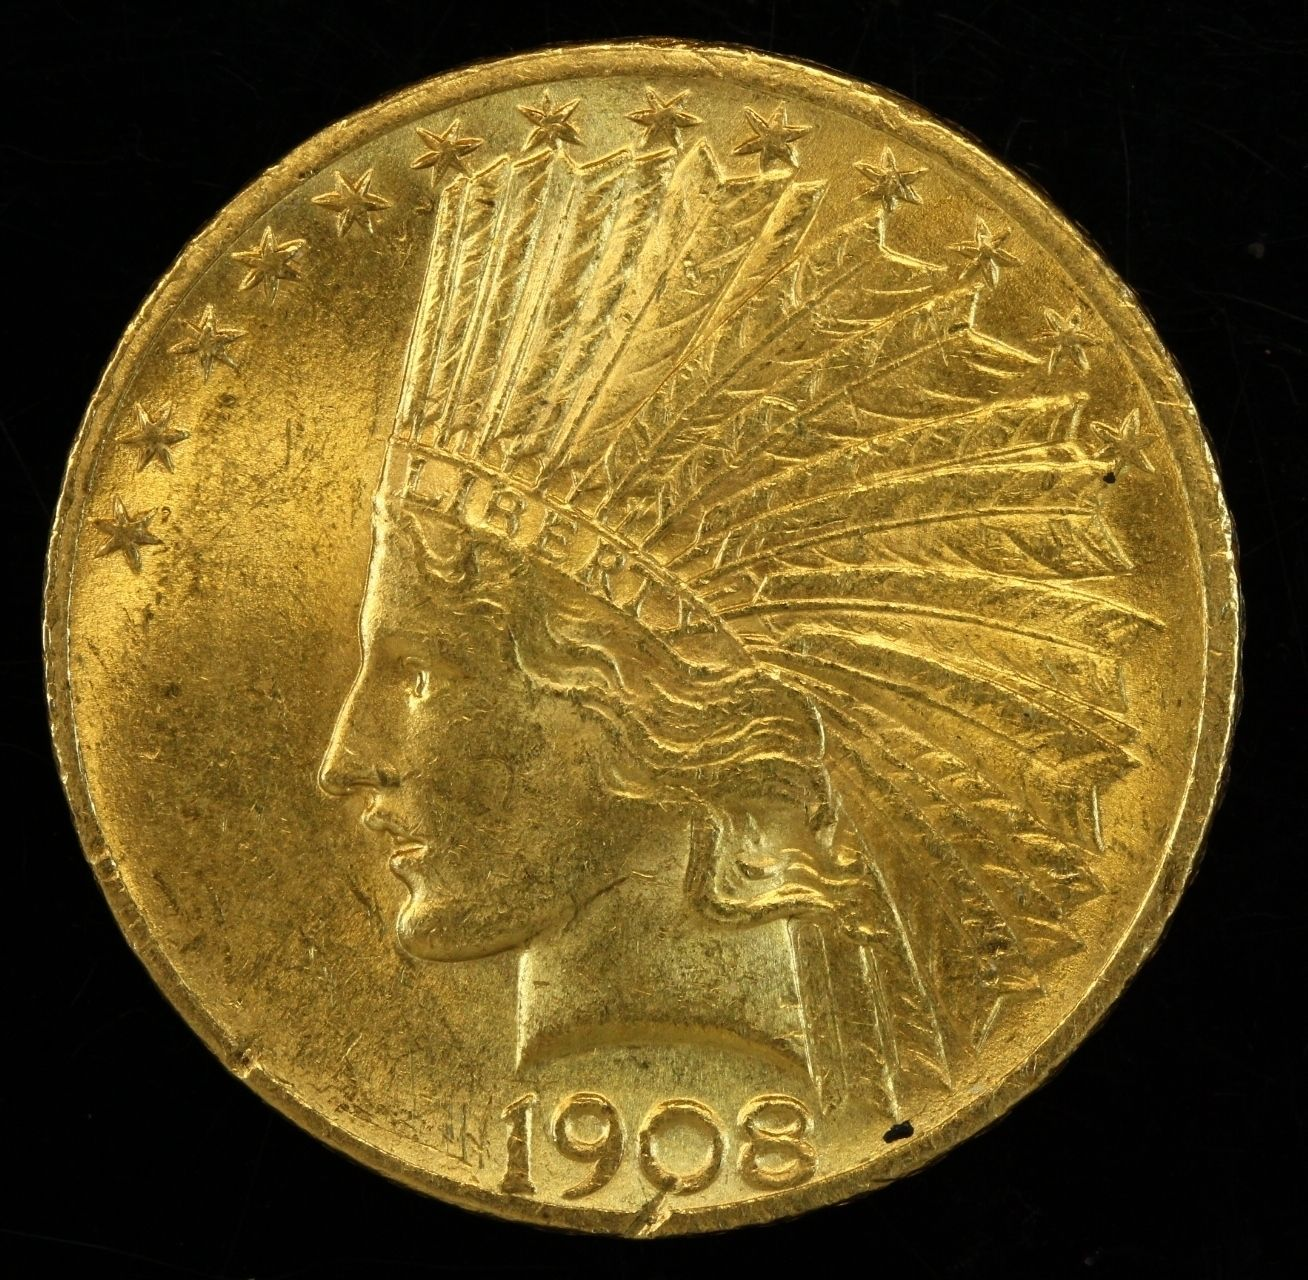 1908 Indian Head Eagle Ten Dollar Gold Coin Coins Rare Coins Old Coins